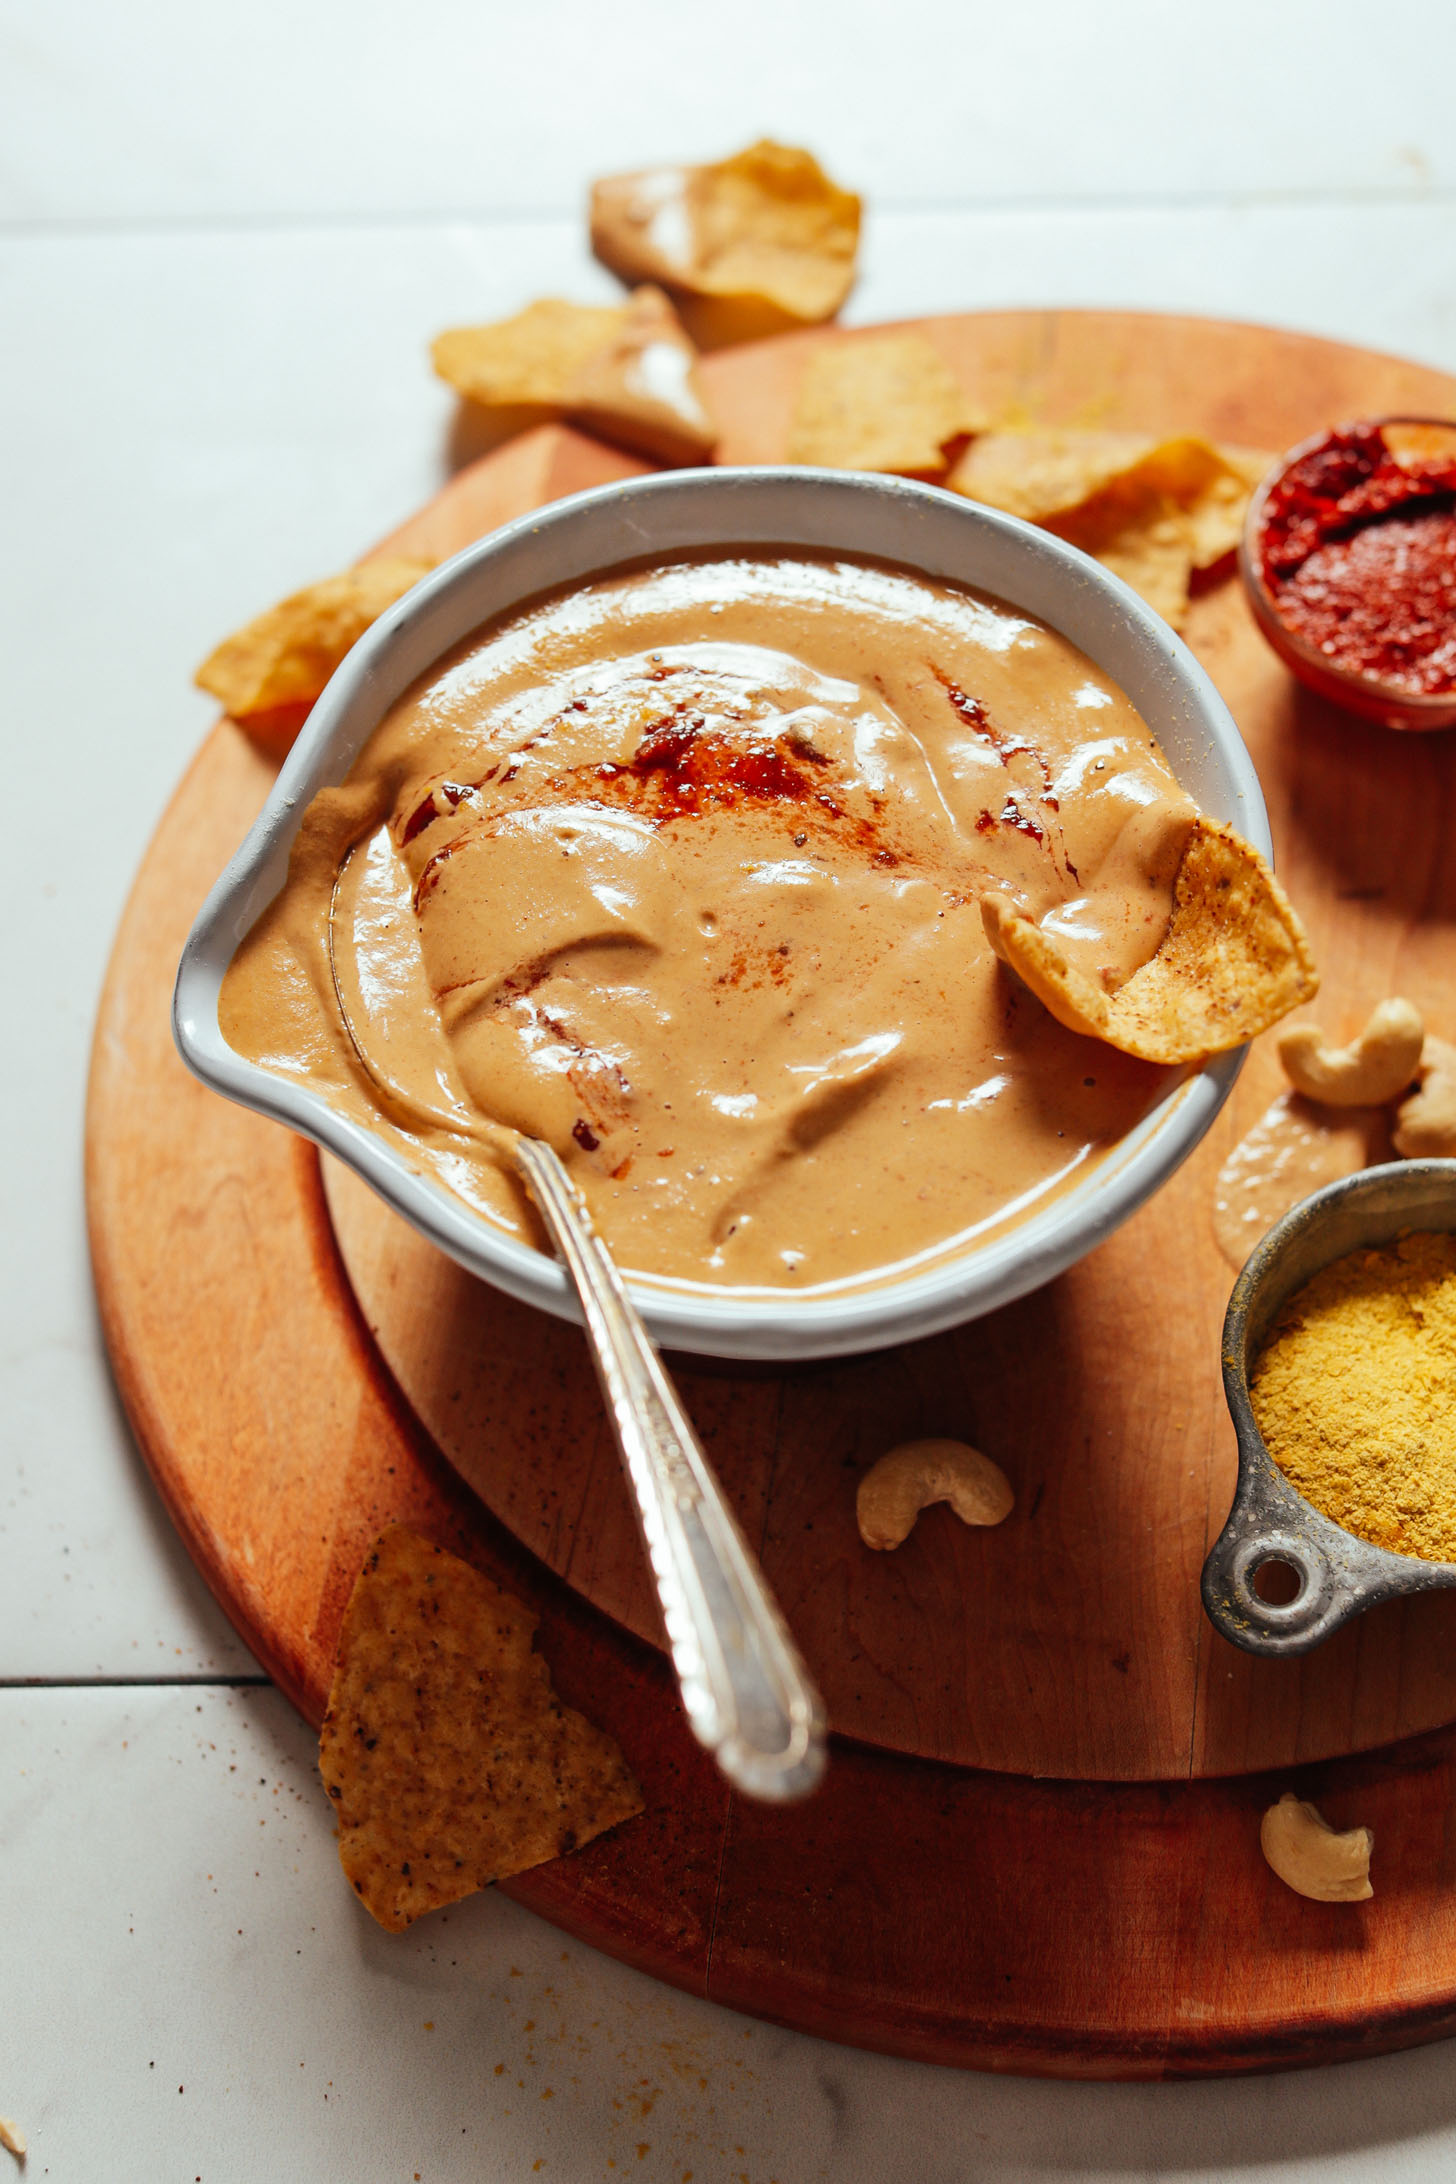 Image of vegan cashew queso in a bowl with a spoon on the left side and chip on the right side